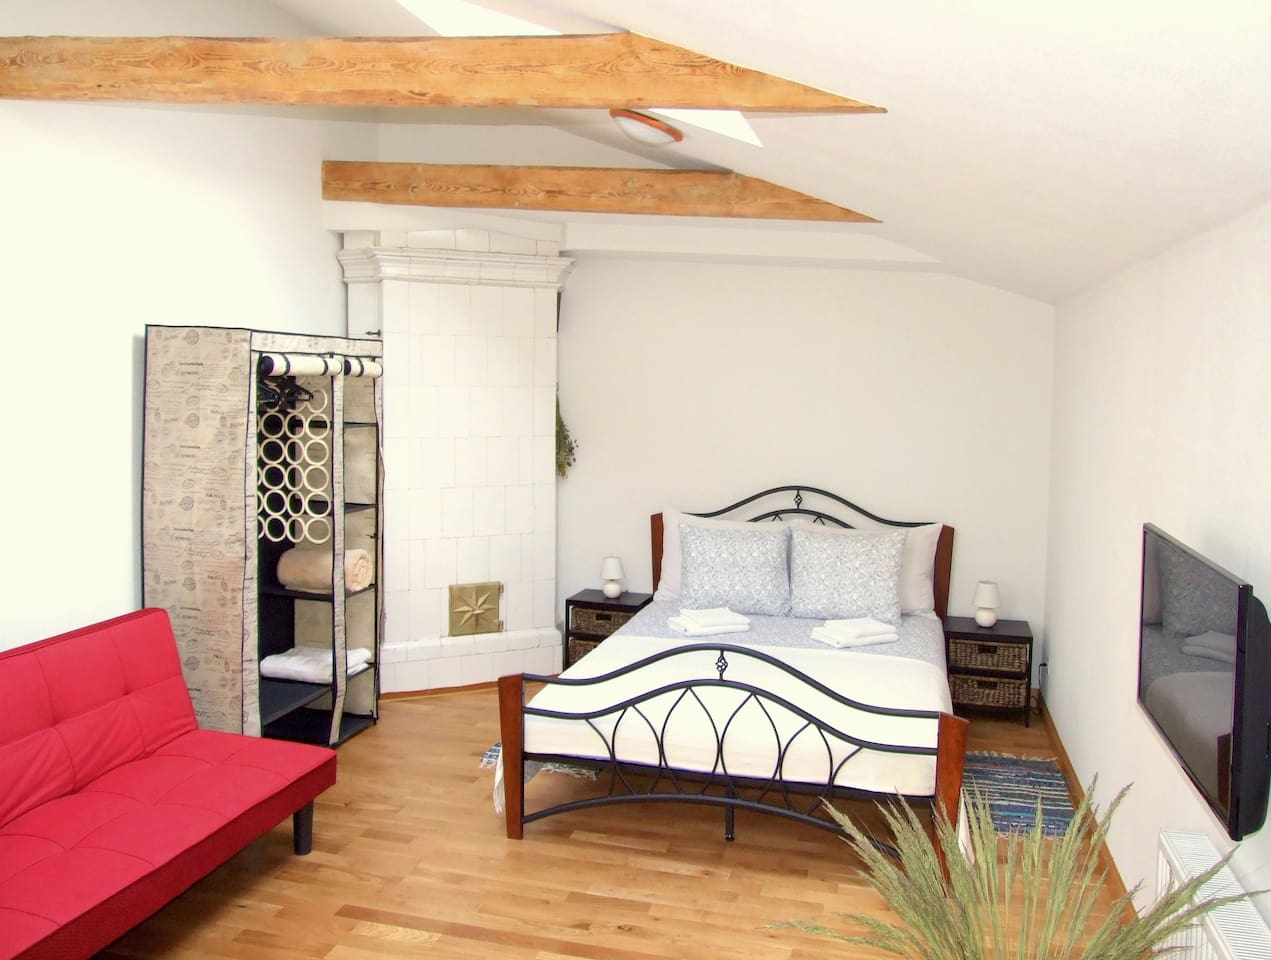 Sunny loft studio with double bed, pull-out sofa, wardrobe, 131 TV channel, Wi-Fi internet.